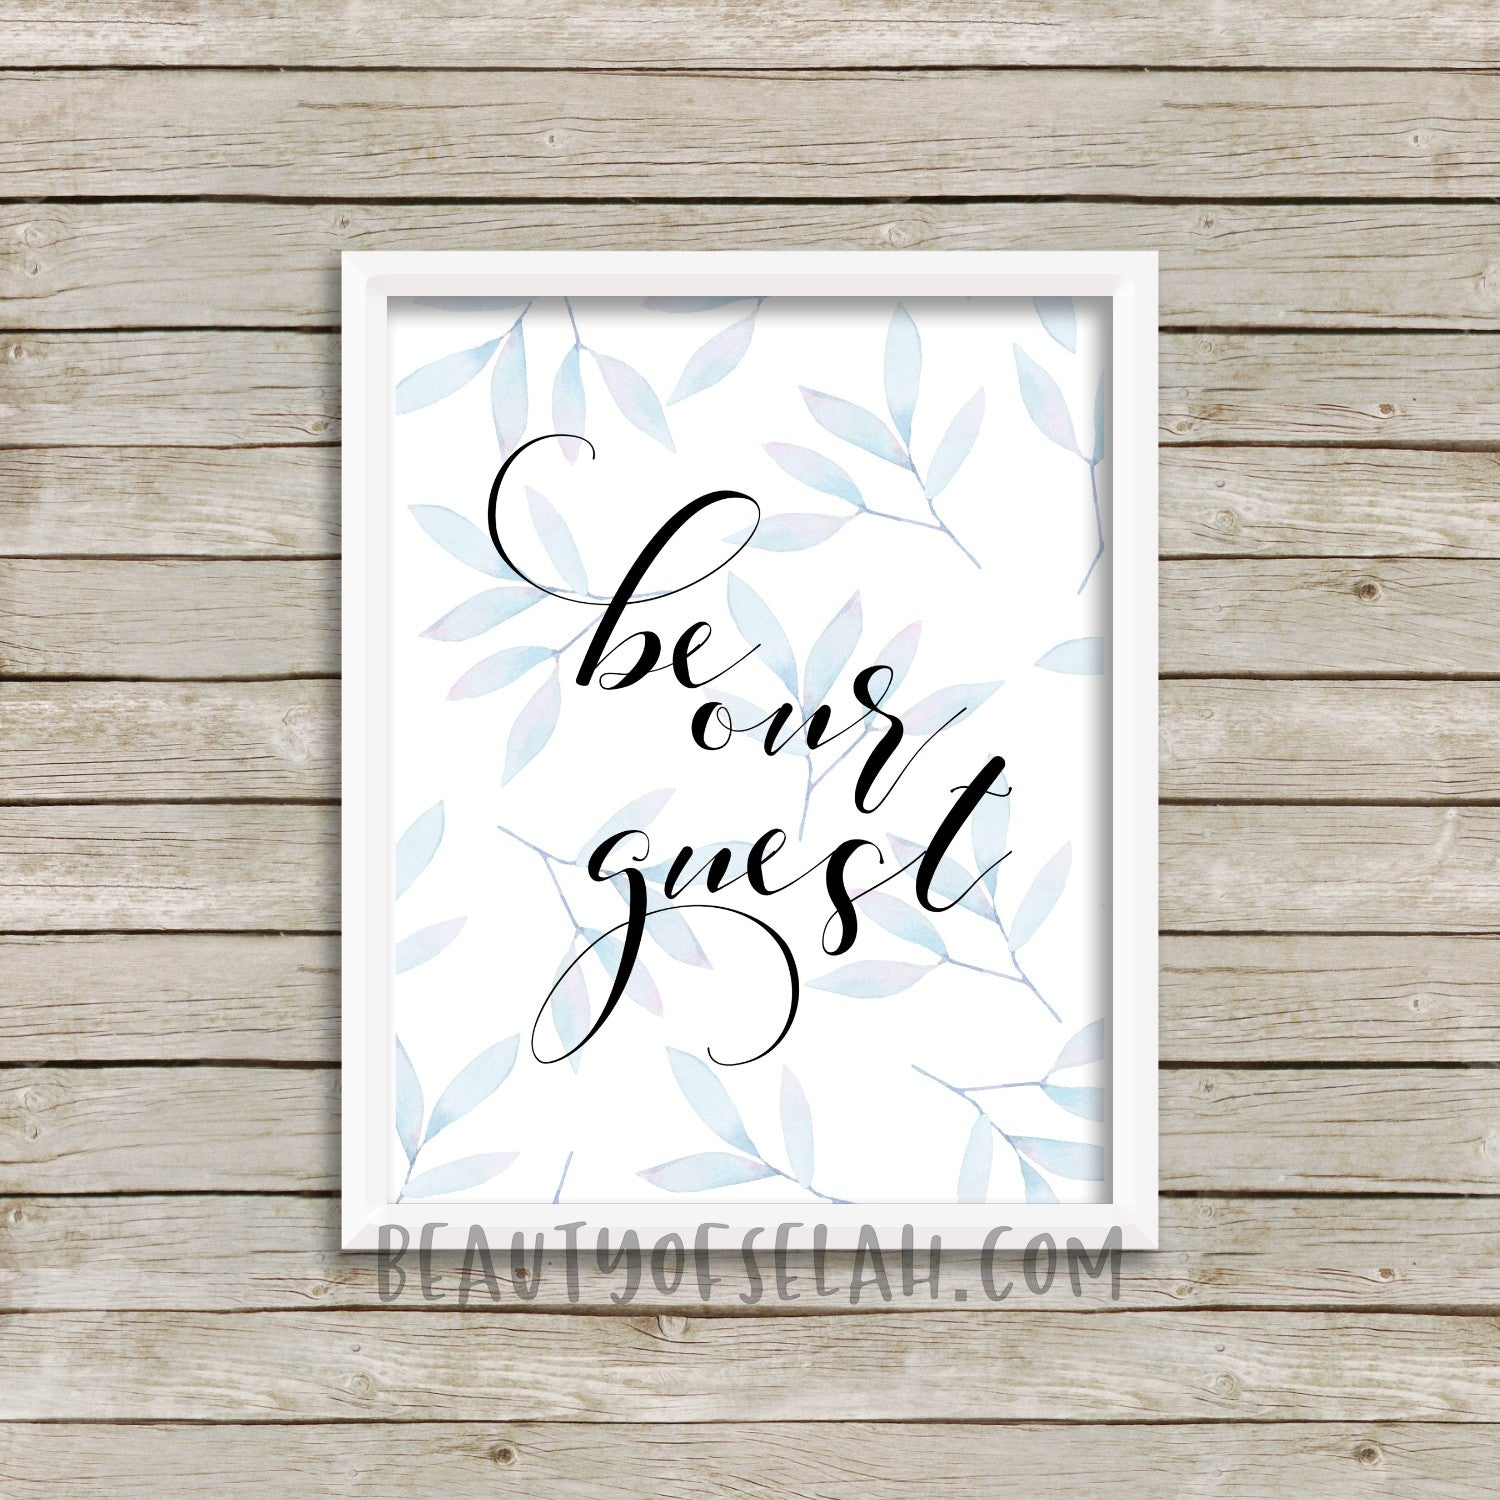 graphic regarding Be Our Guest Printable identified as Be our visitor Print